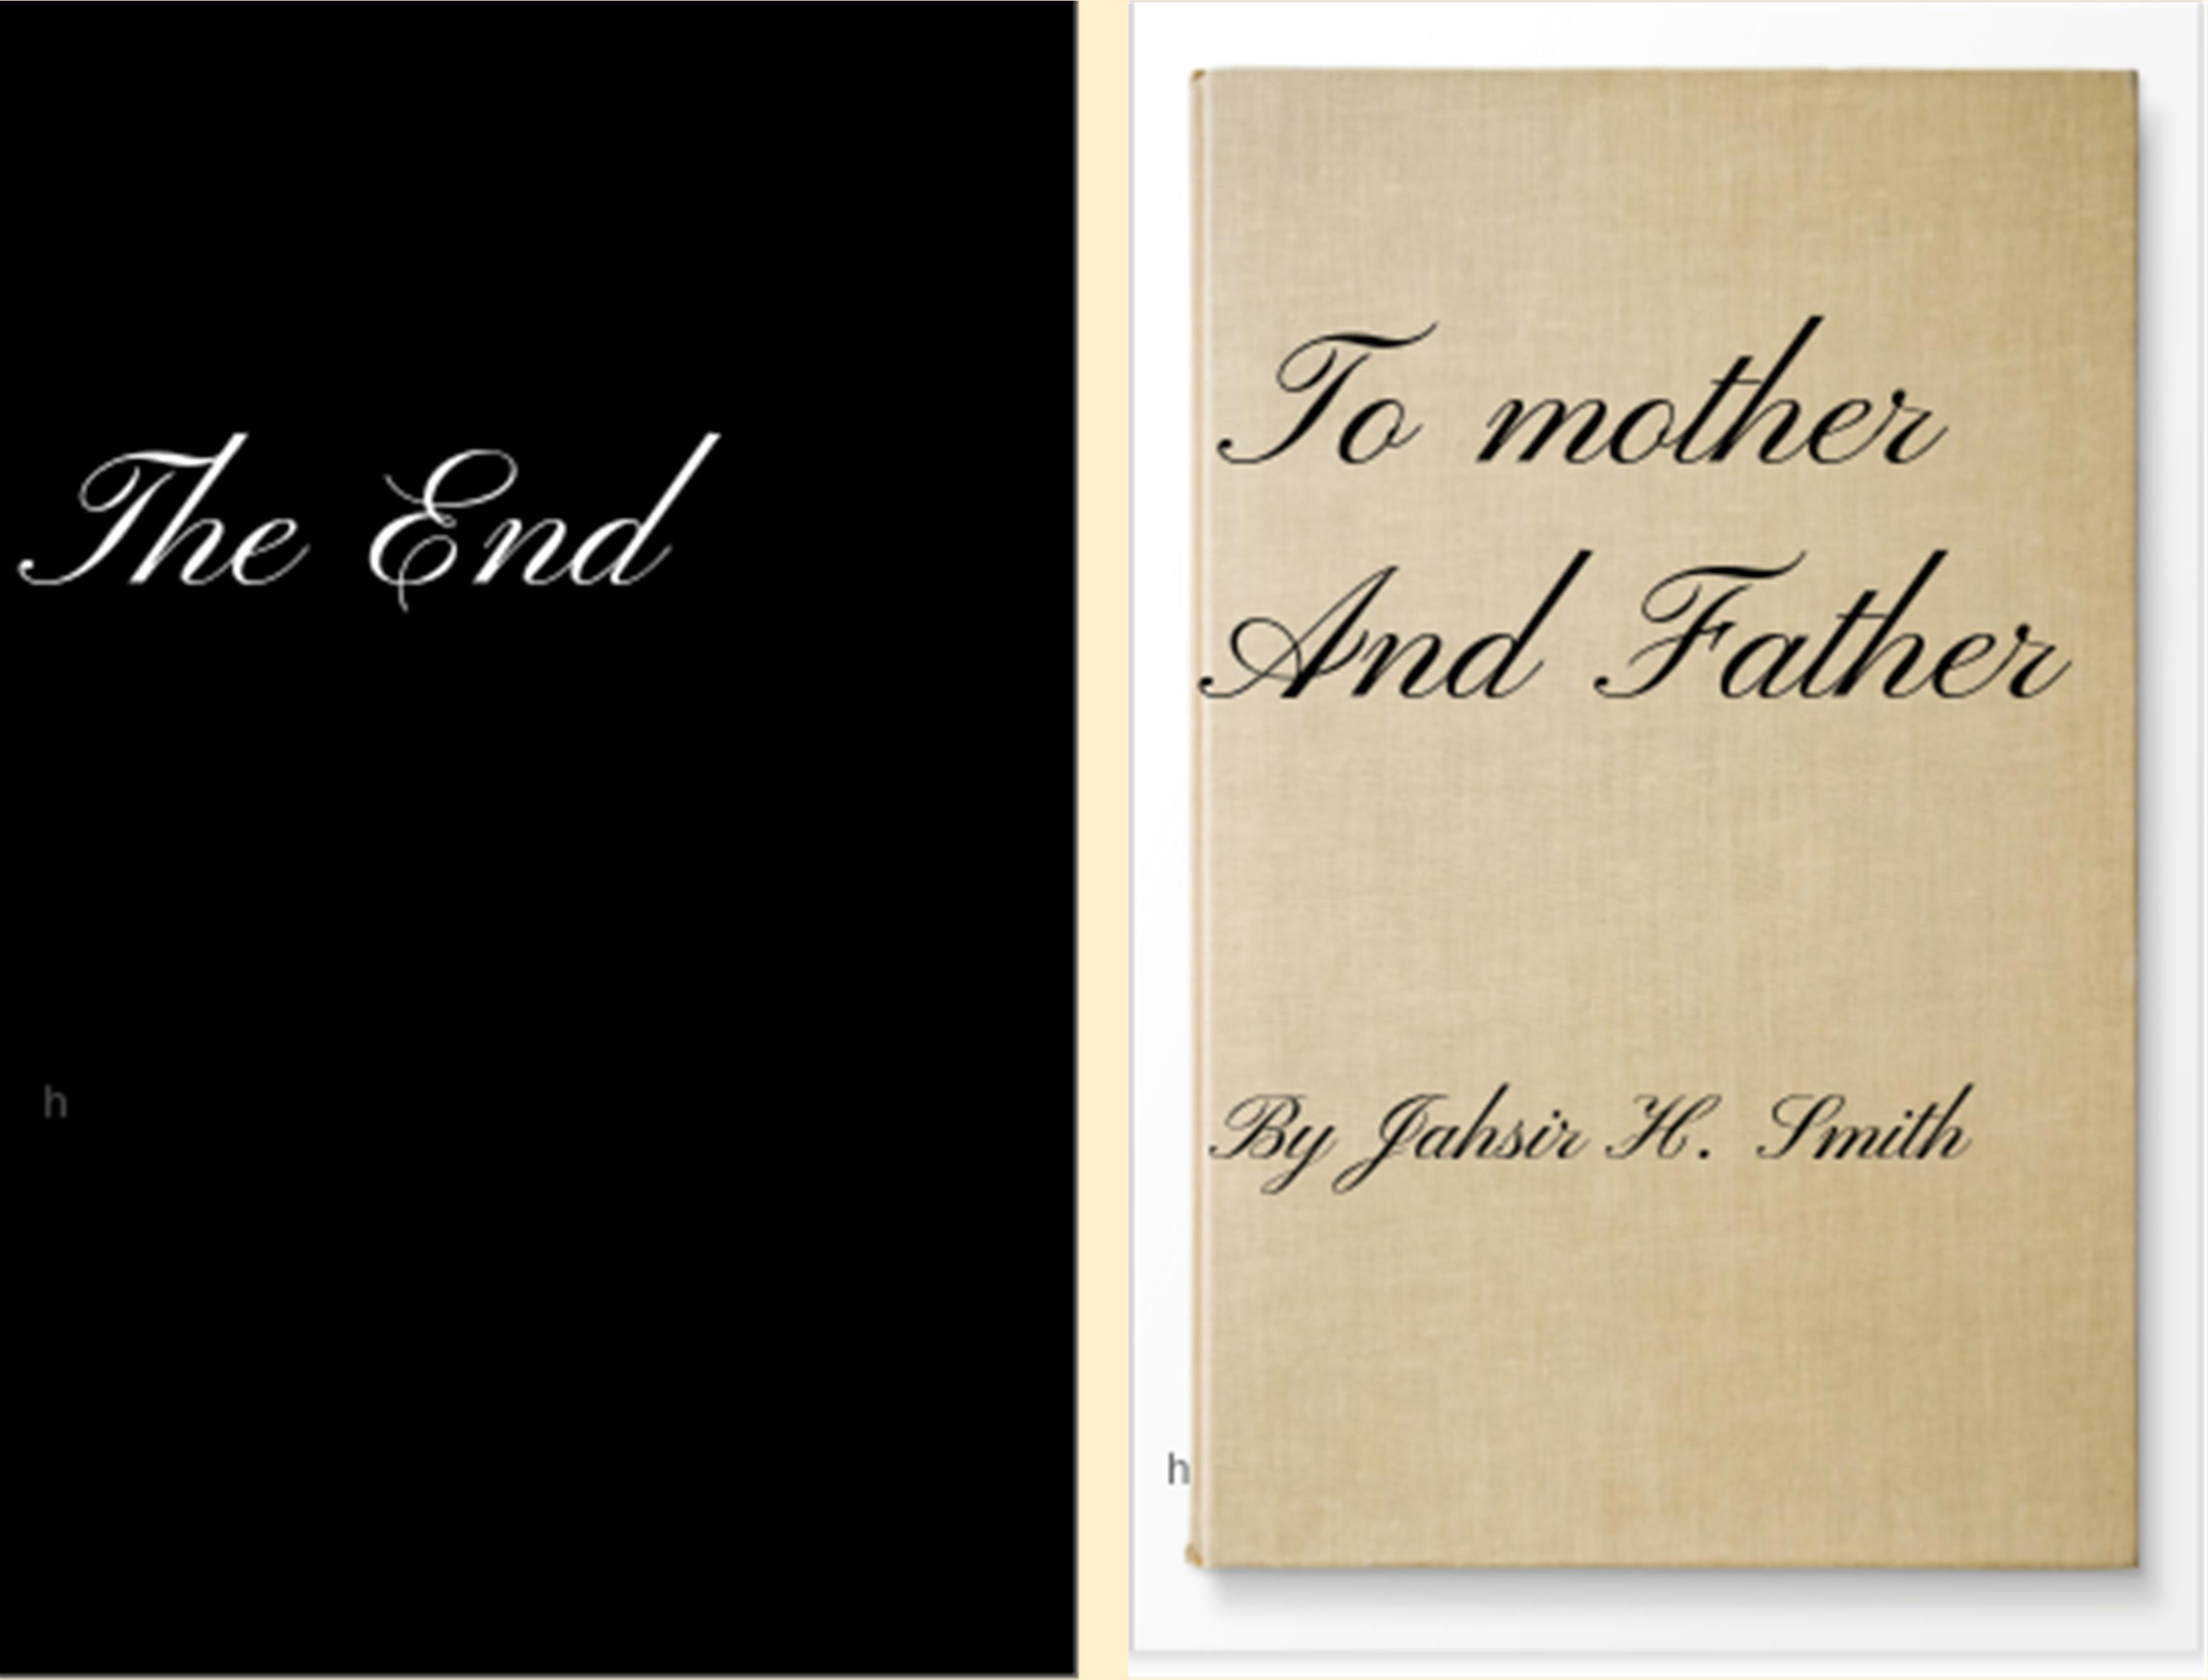 To mother and father cover image